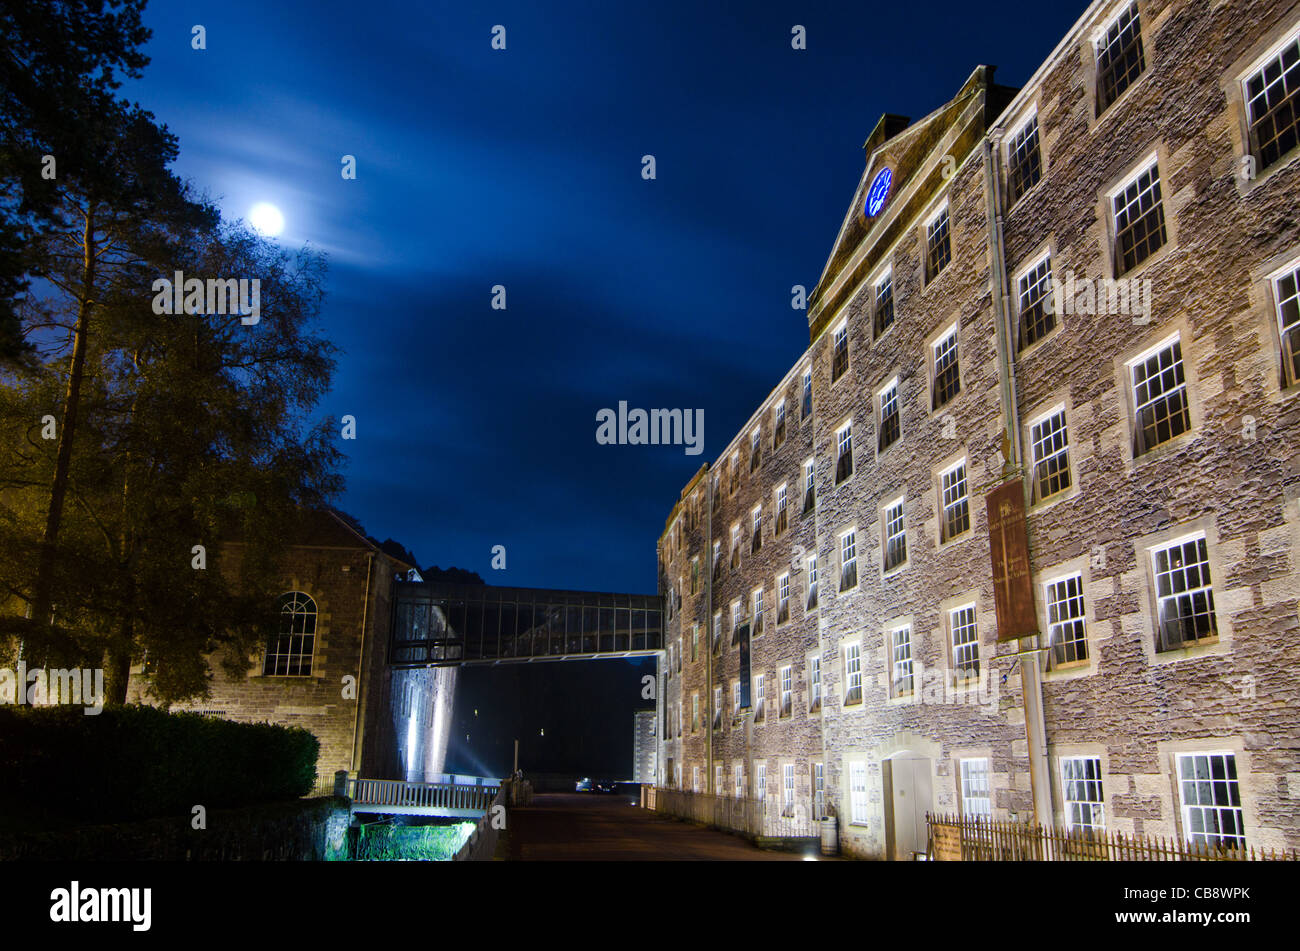 Cotton mills at New Lanark, Scotland. Founded by David Dale in 1786. - Stock Image